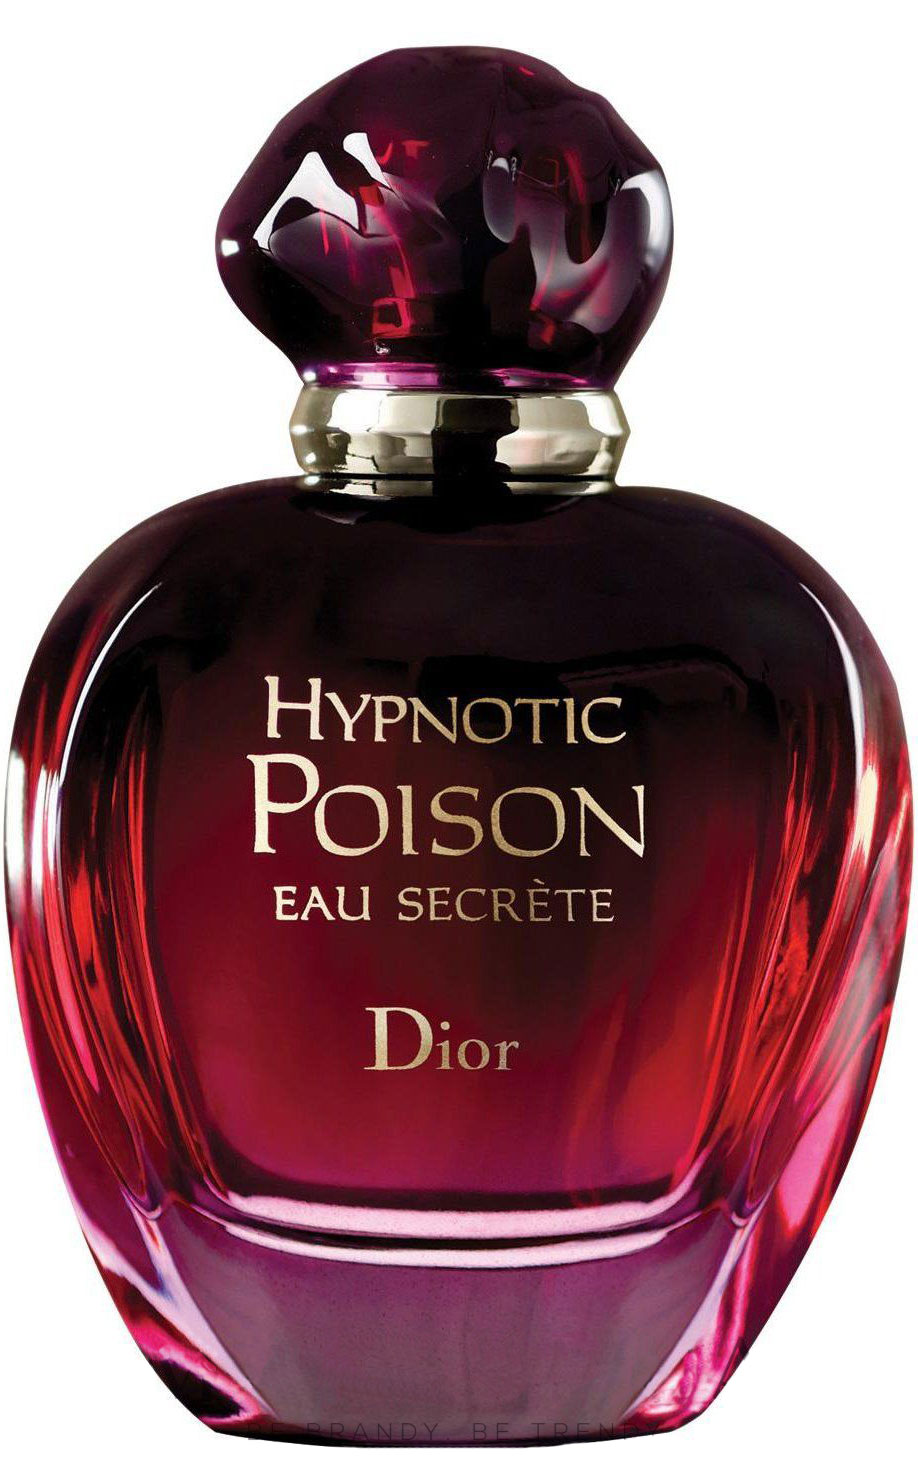 Christian Dior Hypnotic Poison Eau Secrete